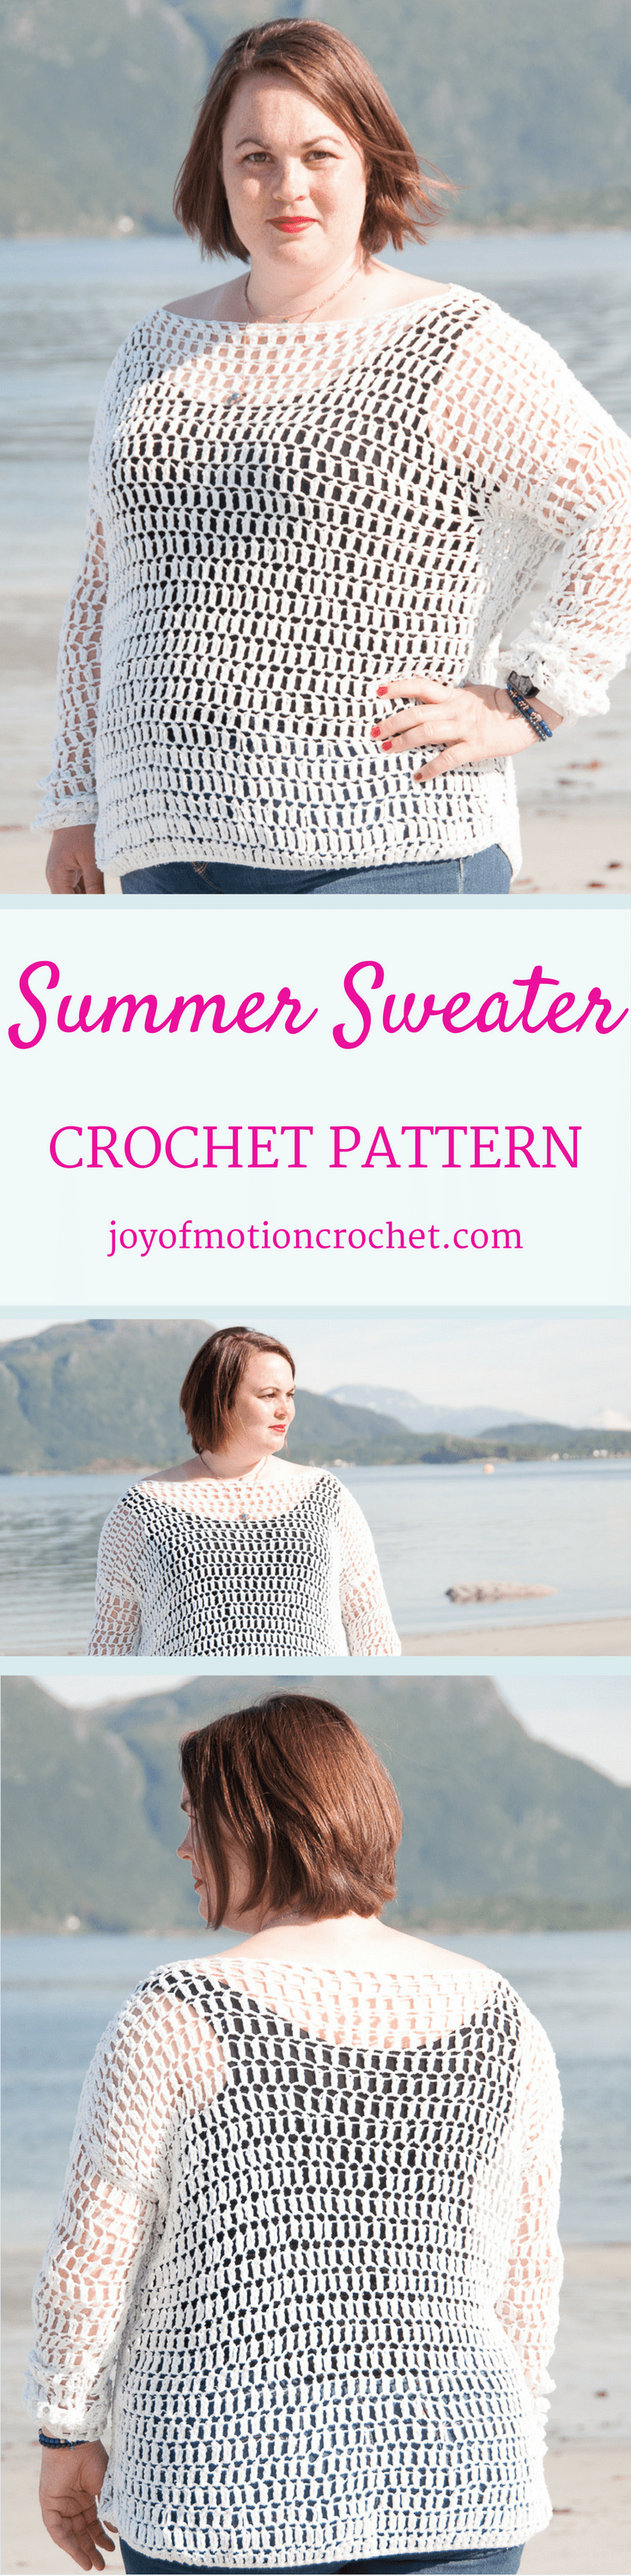 The Summer Sweater a crochet pattern. Woman's sweater crochet pattern with skill level easy. Make this fashionable crochet sweater with you own hook & yarn. Sweater crochet pattern easy for her . Crochet sweater | woman's crochet sweater | crochet pattern for her | fashionable crochet sweater | interesting crochet sweater | click to learn more or repin to save it forever. Spring crochet sweater.